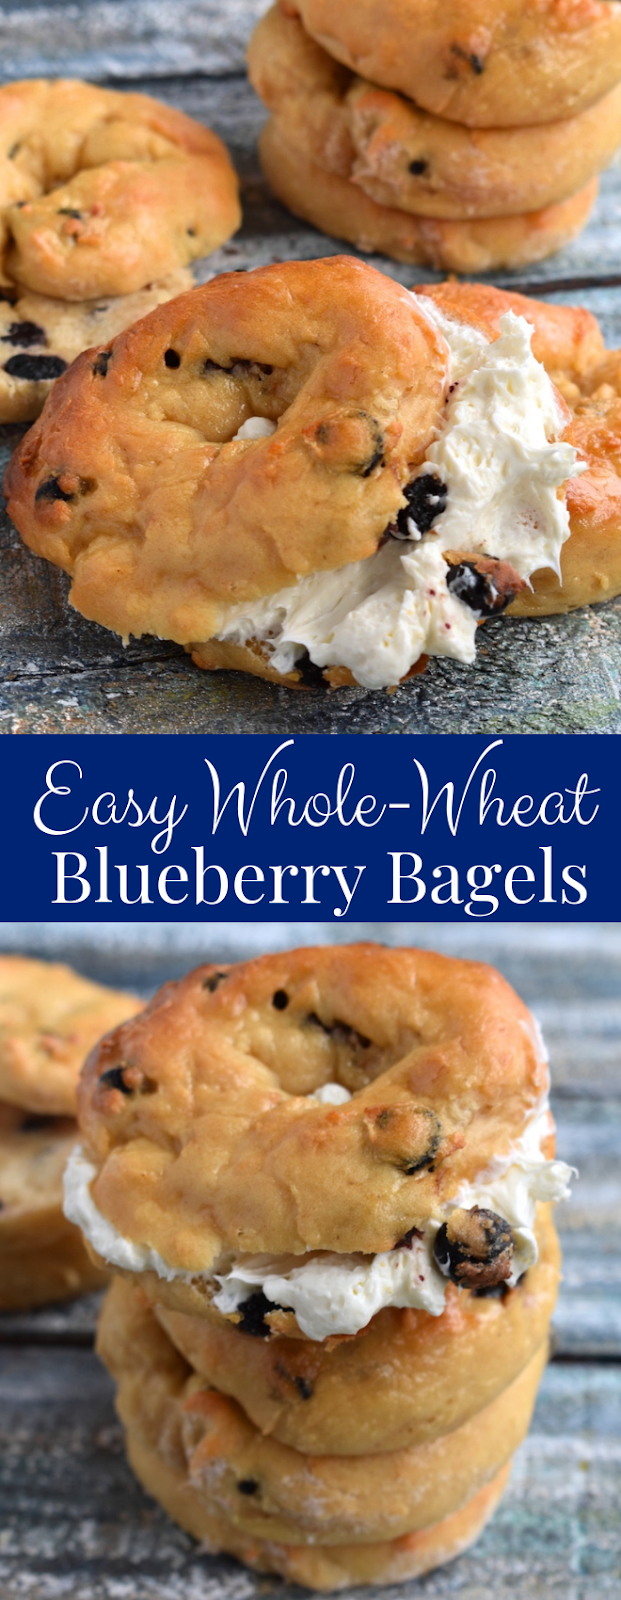 Easy Whole-Wheat Blueberry Bagels